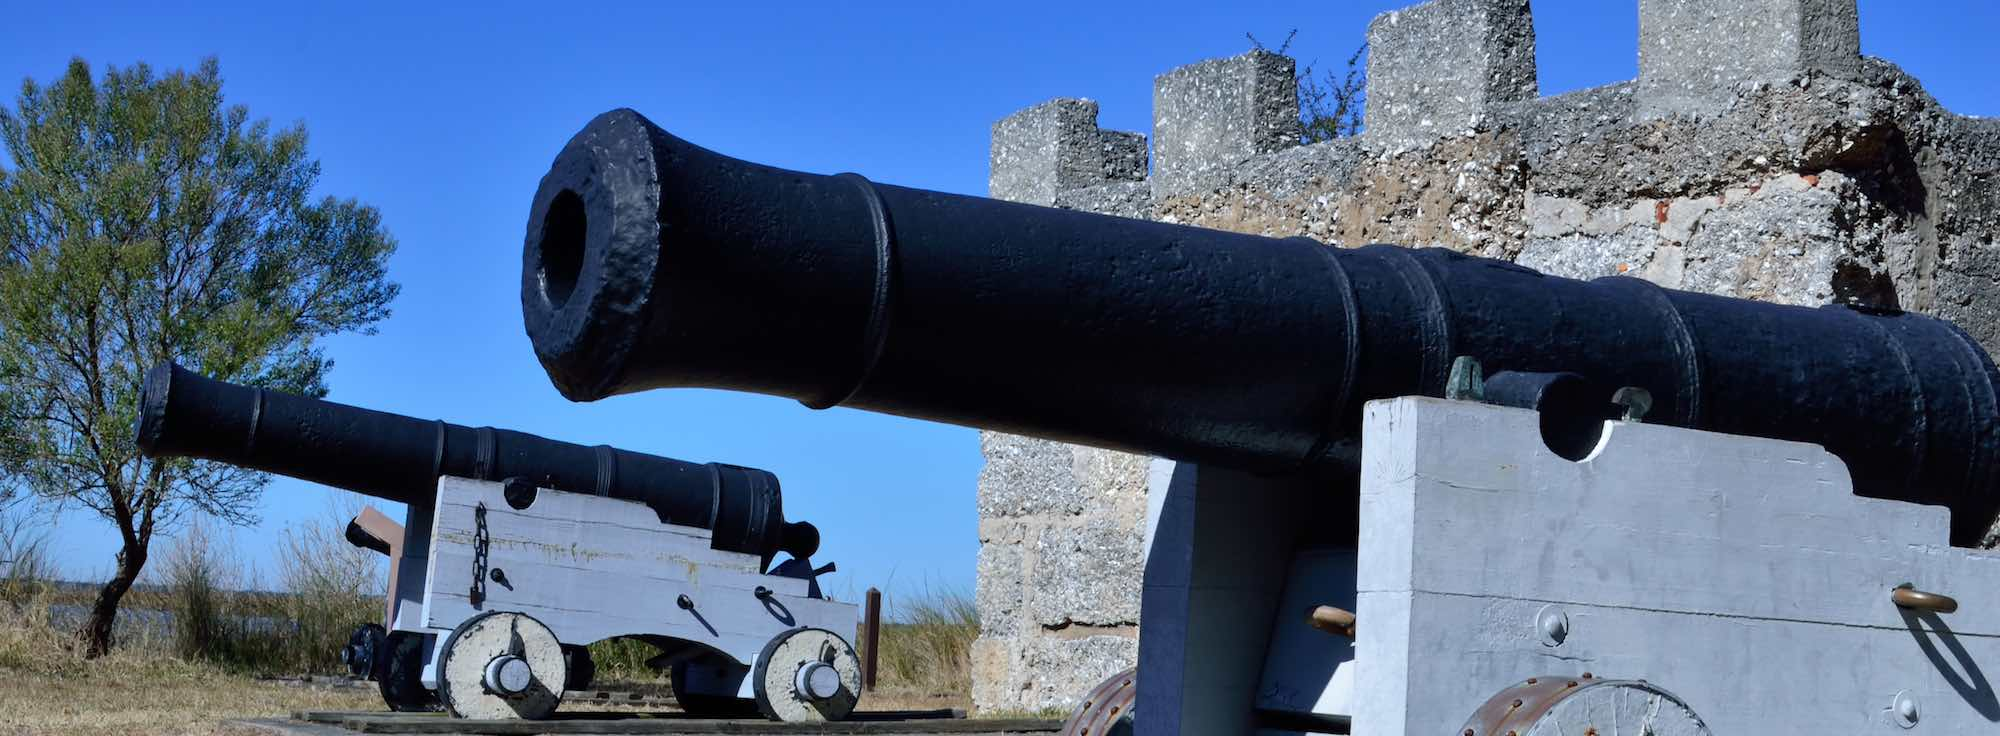 Cannon and the King's Magazine at Fort Frederica National Monument, St Simons Island, Georgia.